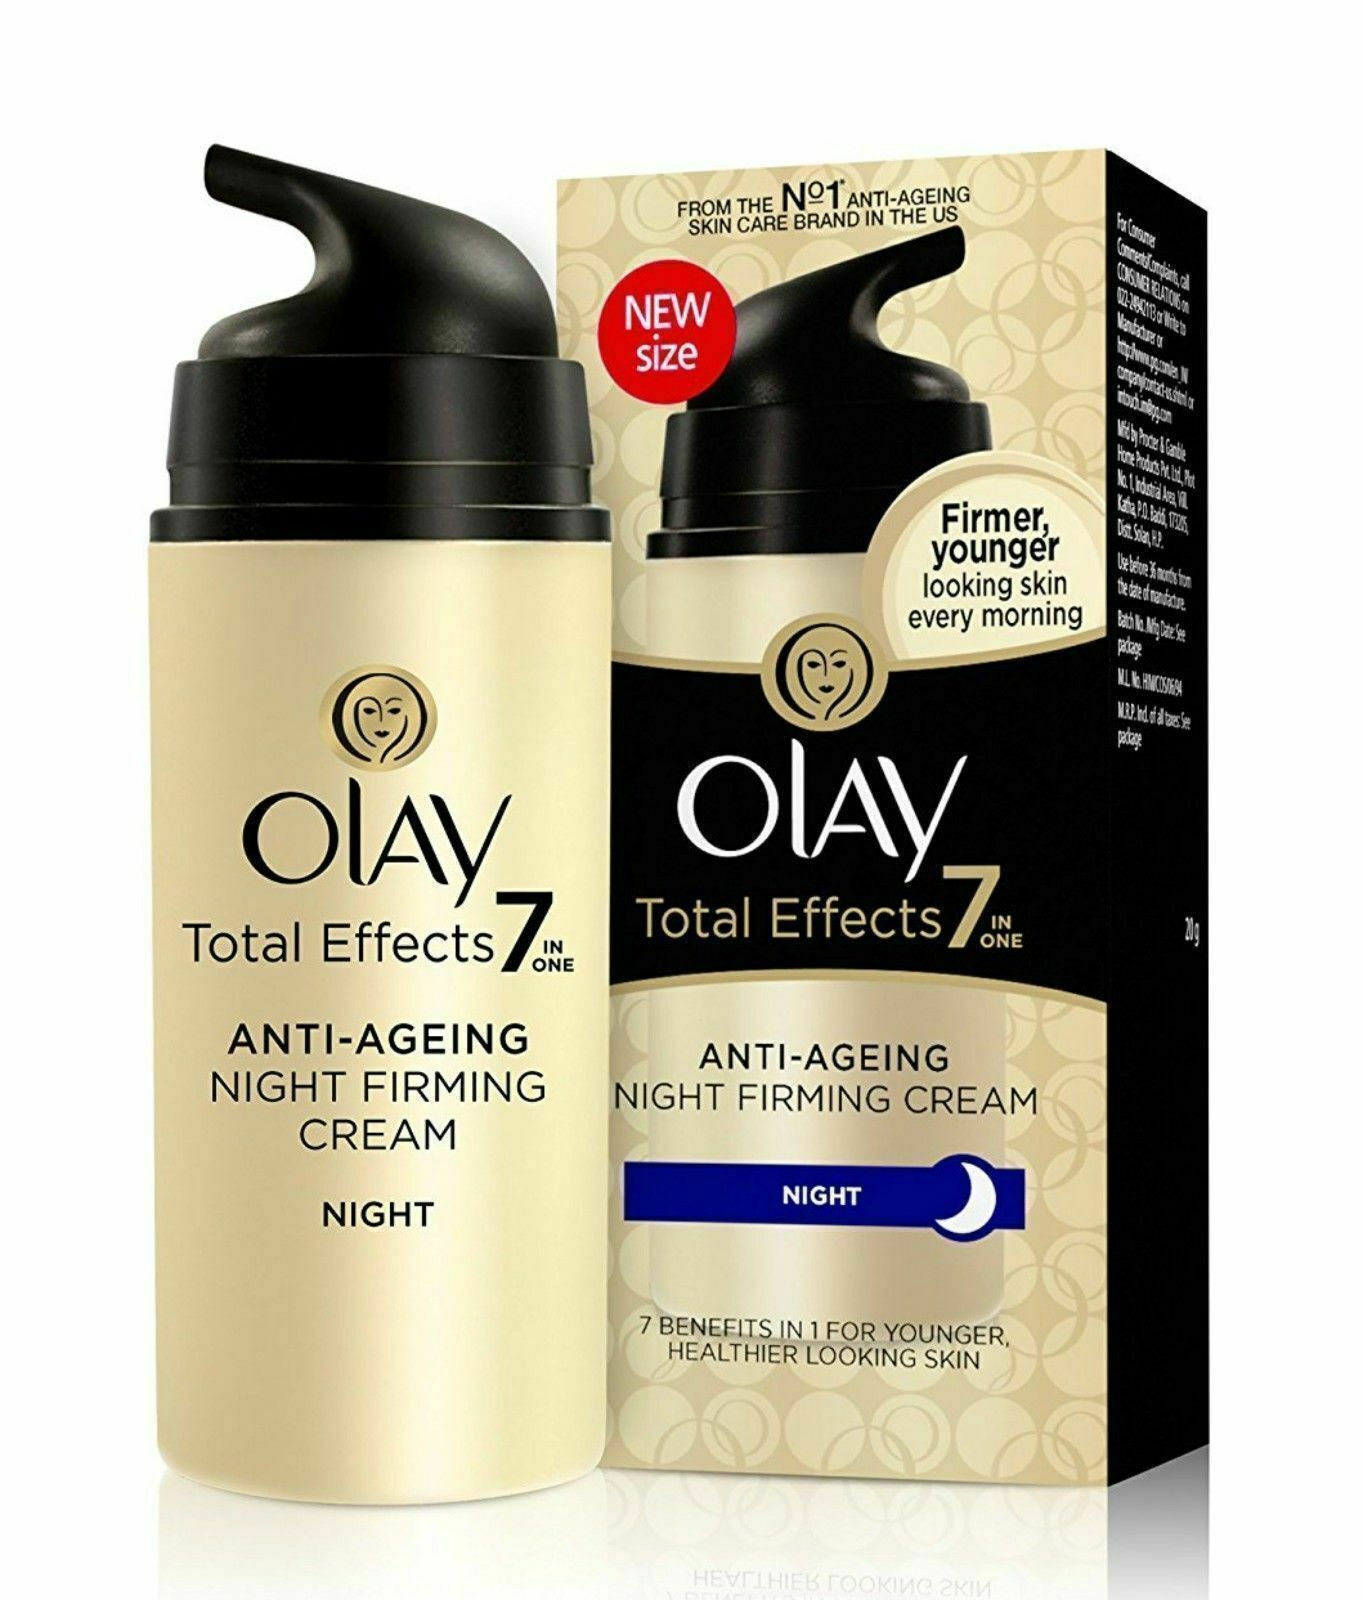 Olay-New-Total Effects 7 in 1 Anti Ageing Night Firming Crea